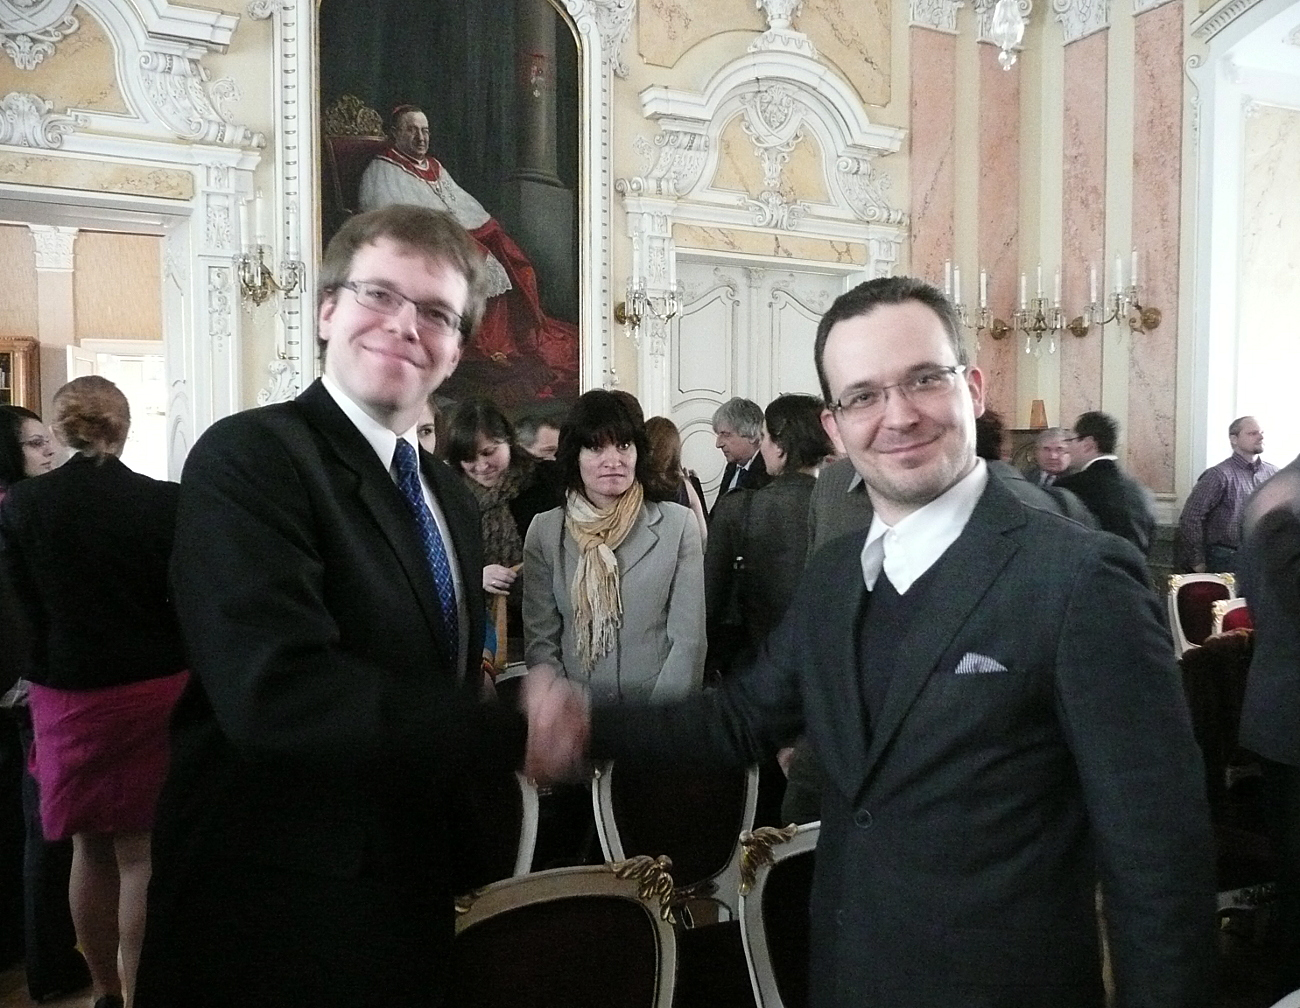 Ivo Straka awarded by Rector's Prize. Congratulations!